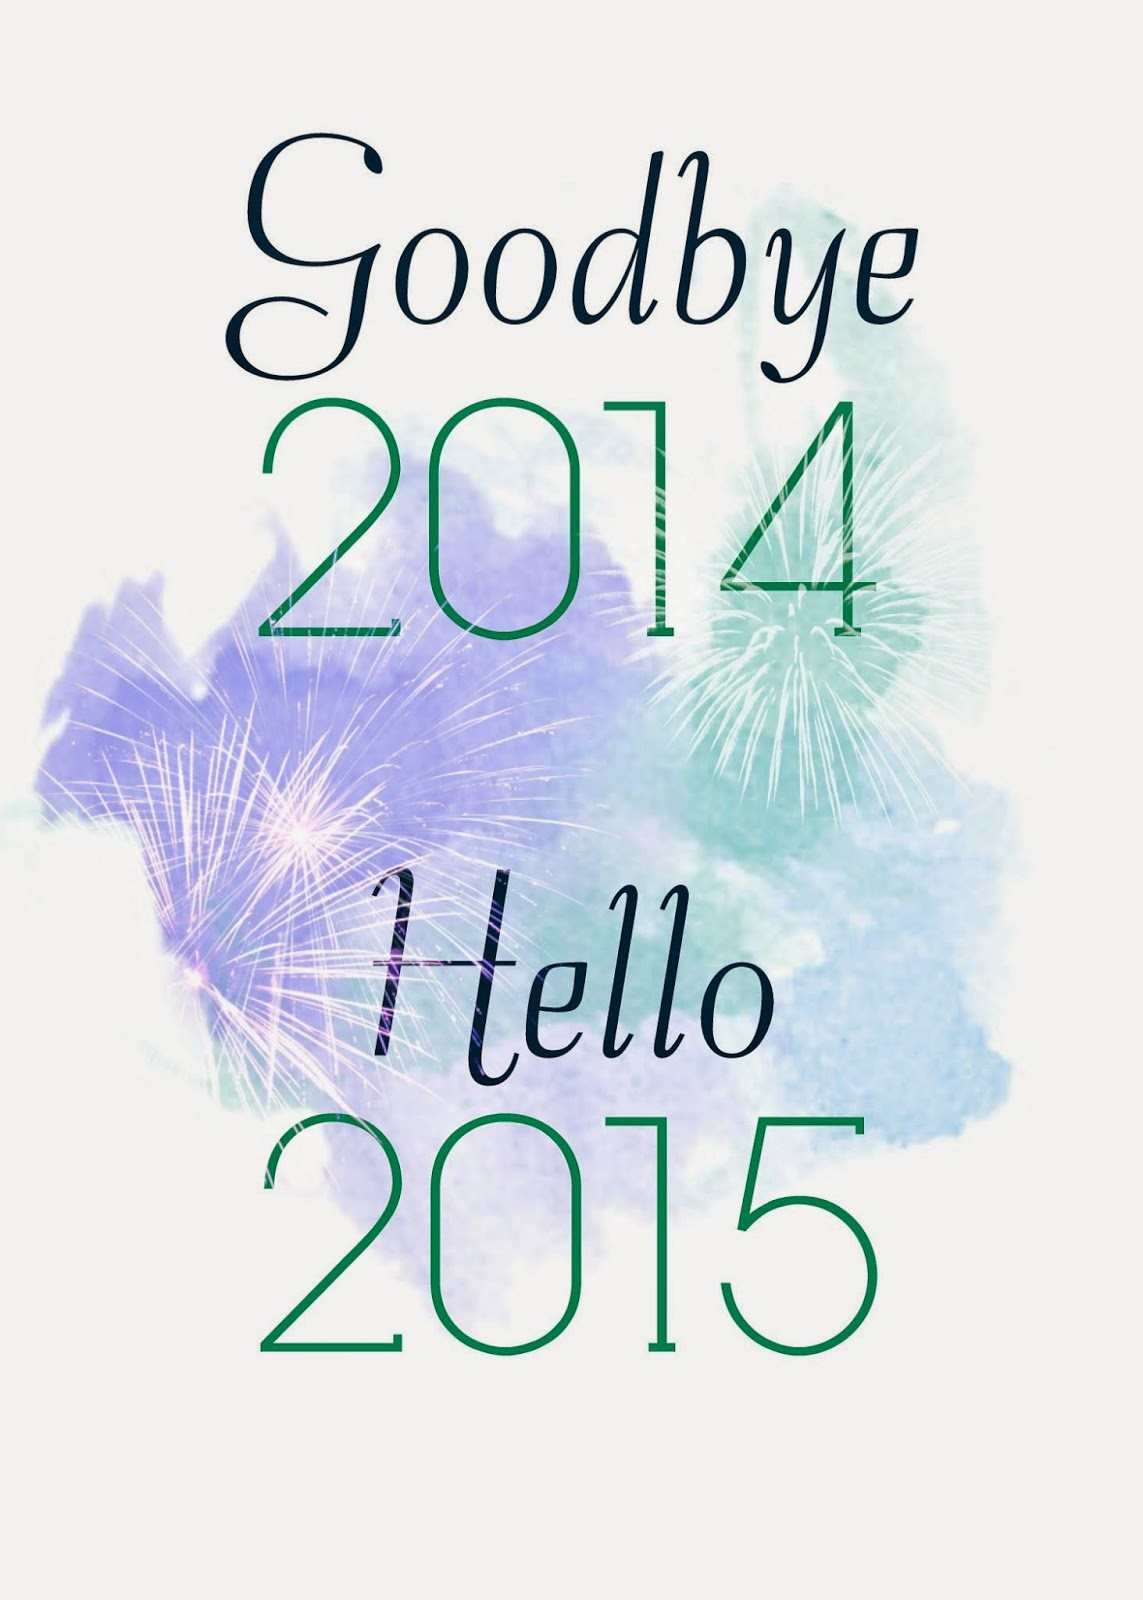 New year. Goodbye 2014 hello 2015